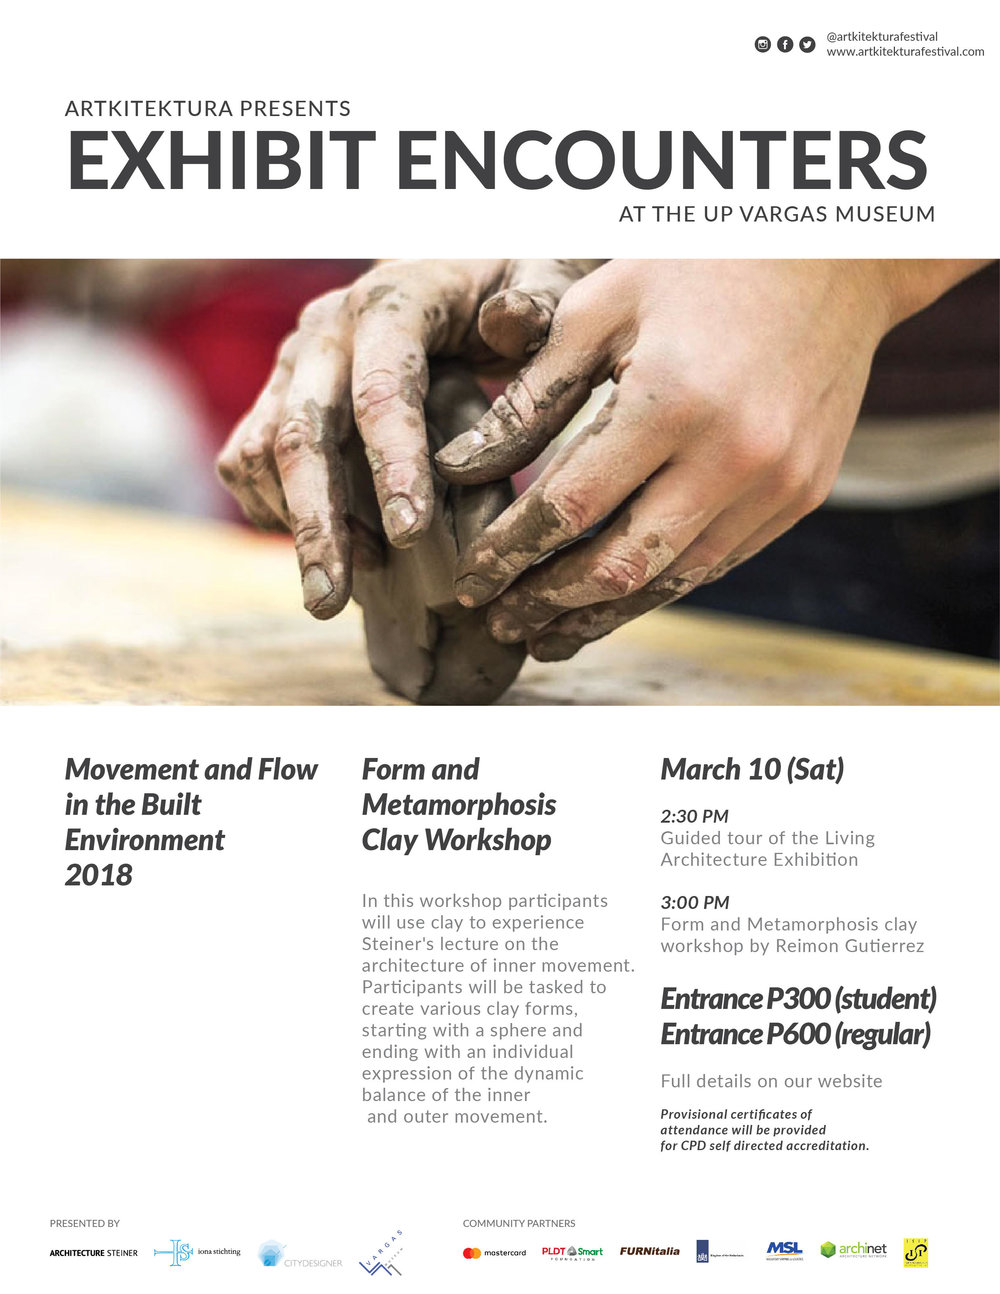 Exhibit Encounters 2 for 10 March.jpg